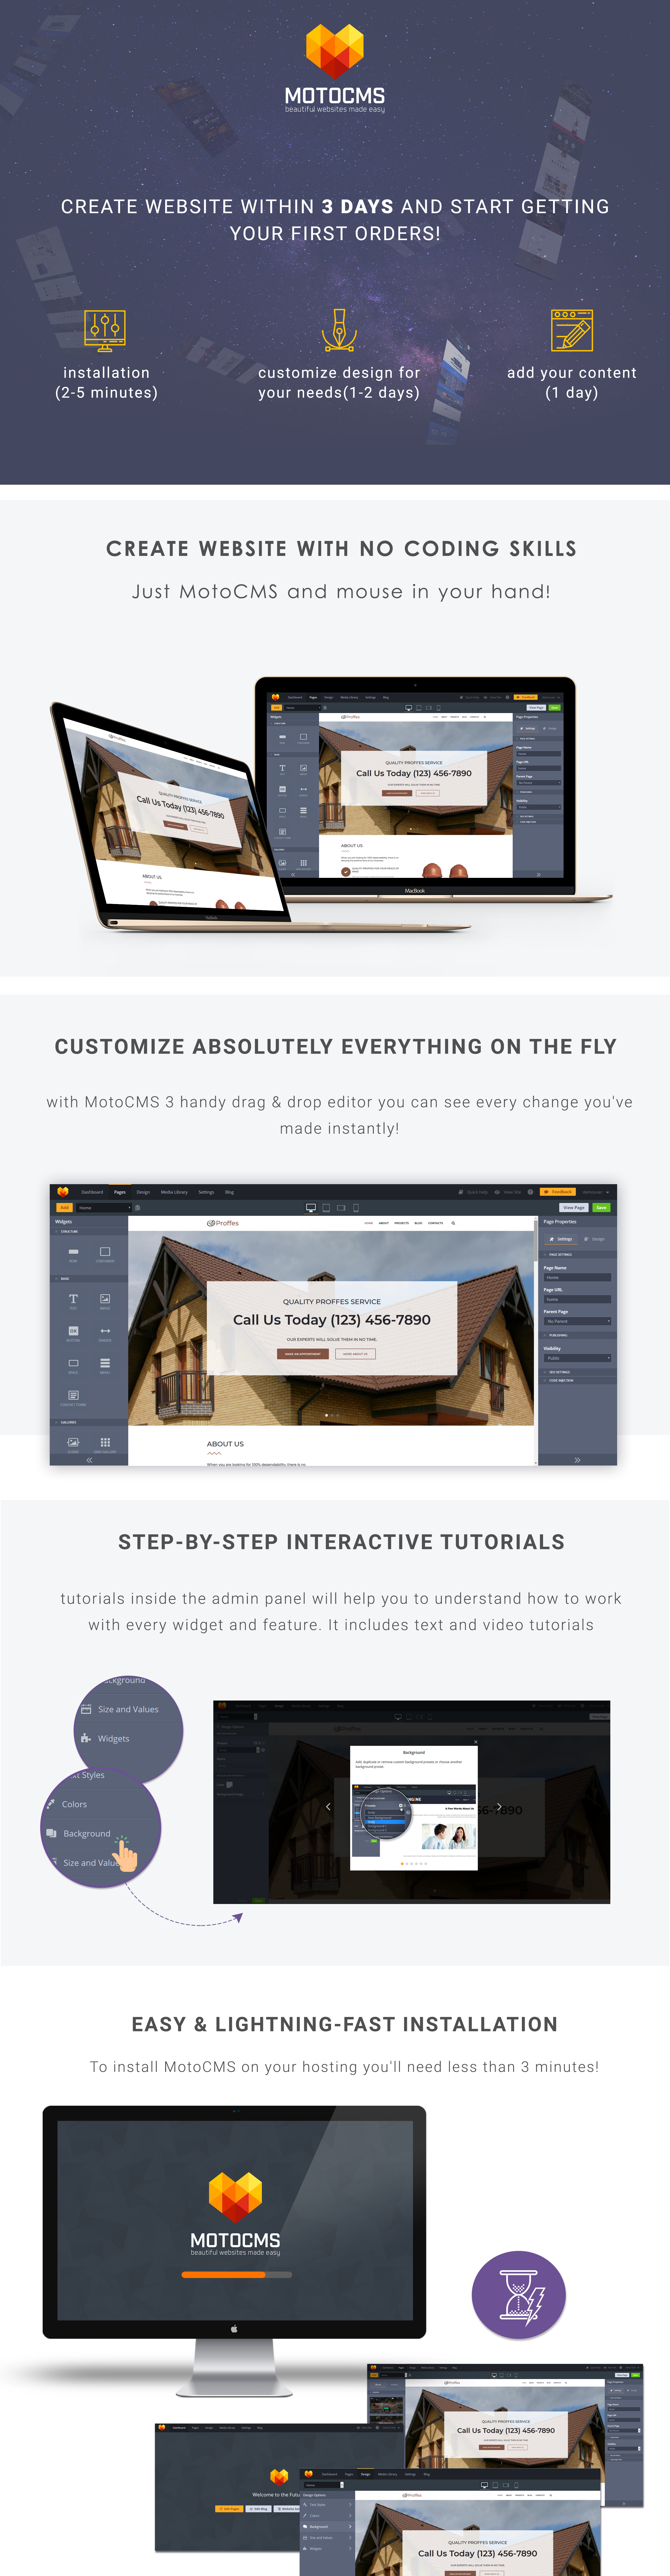 Proffes - Roof Services Moto CMS 3 Template